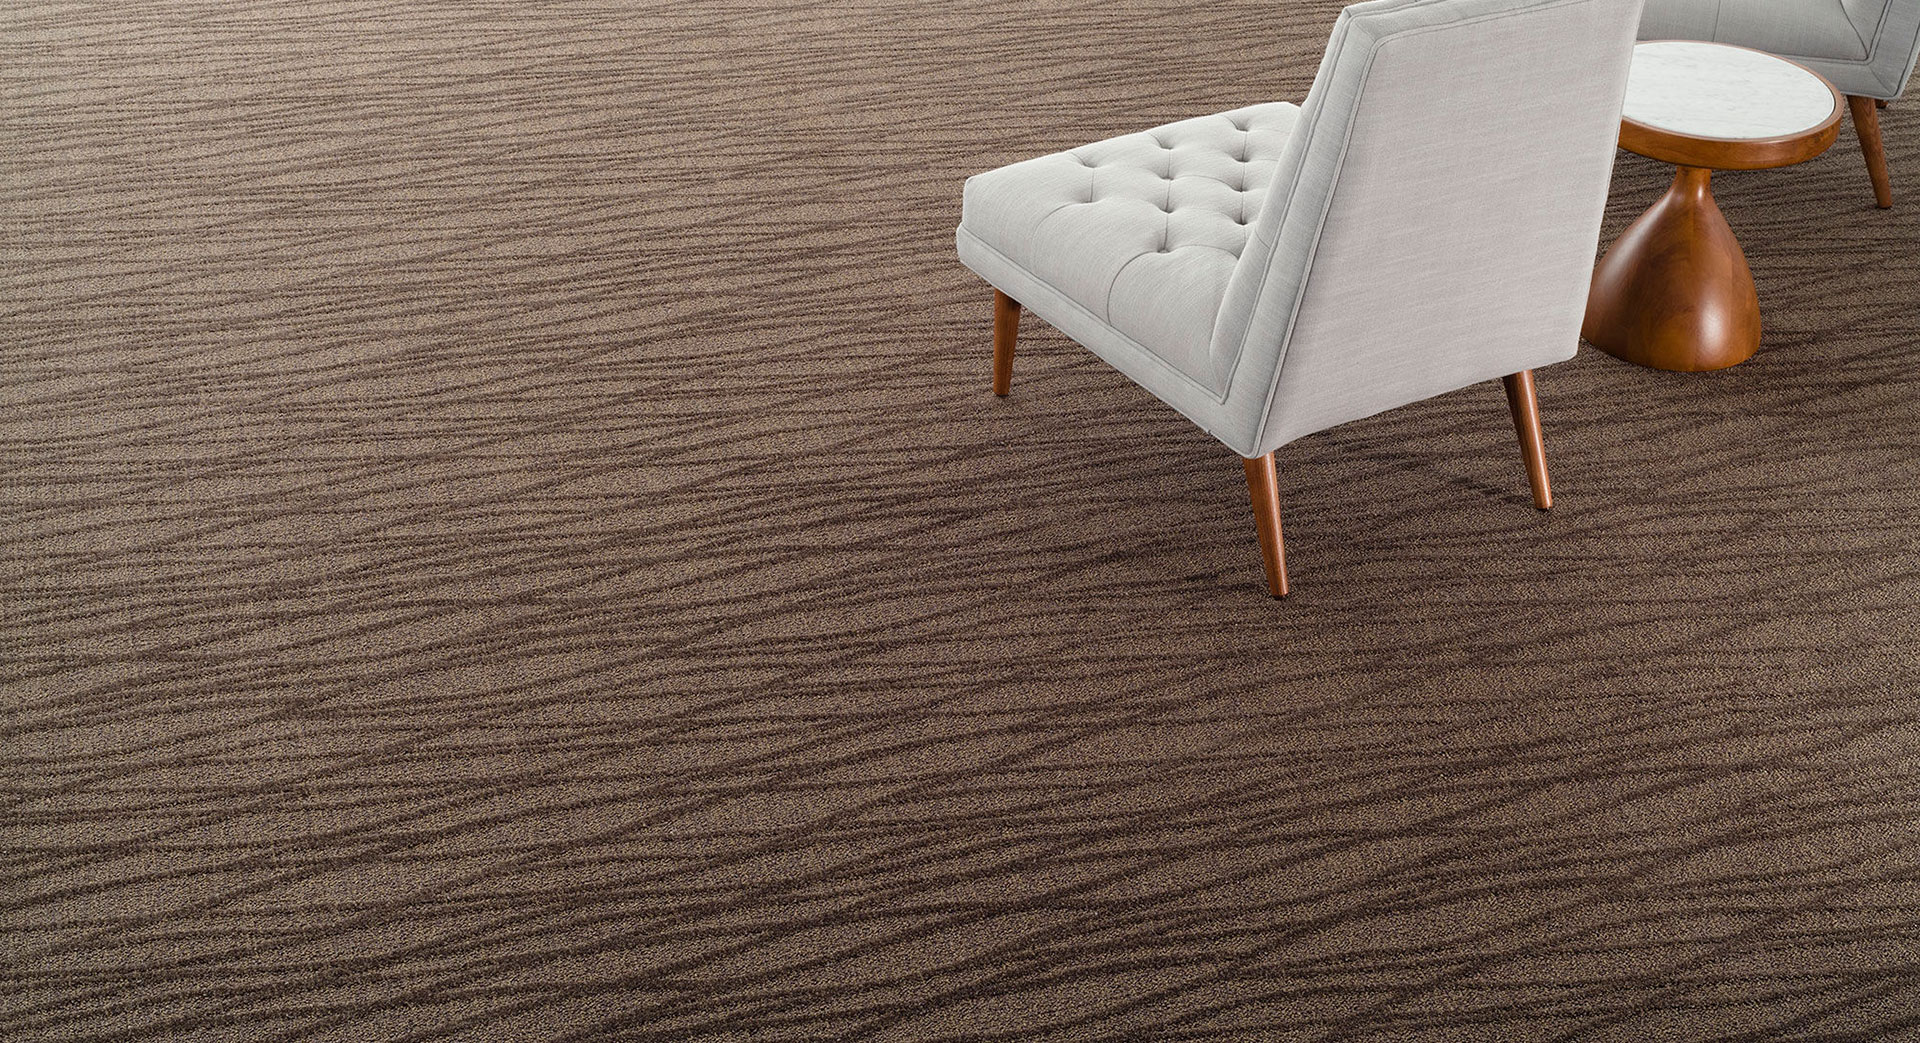 Ten advantages of installing commercial carpets